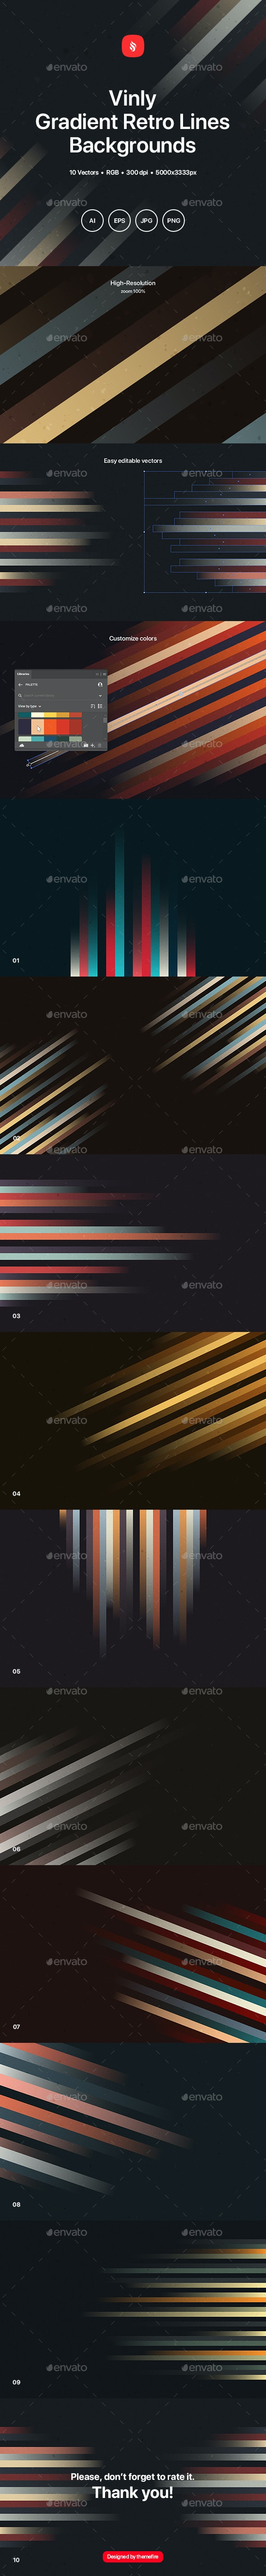 Vinly - Gradient Retro Lines Backgrounds - Abstract Backgrounds